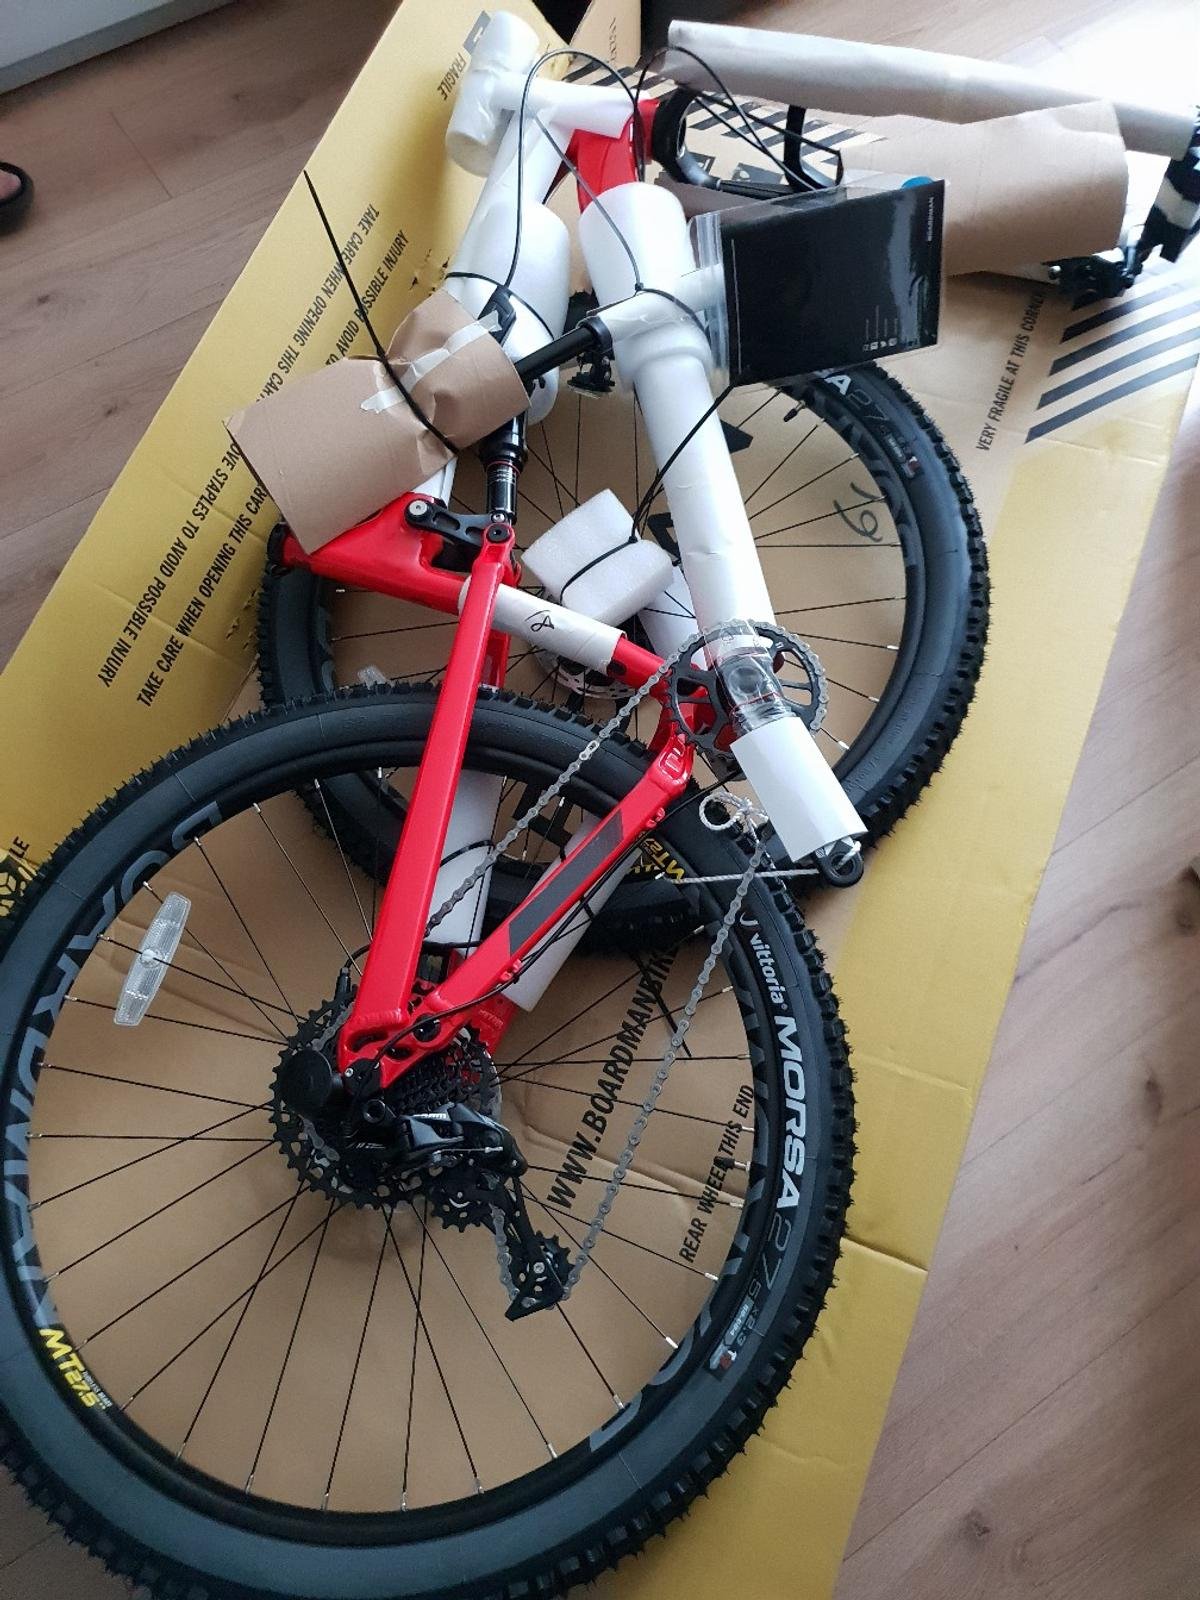 a0d12694a34 2018 Boardman MTR 8.9 Mountain Bike in B64 Sandwell for £850.00 for ...